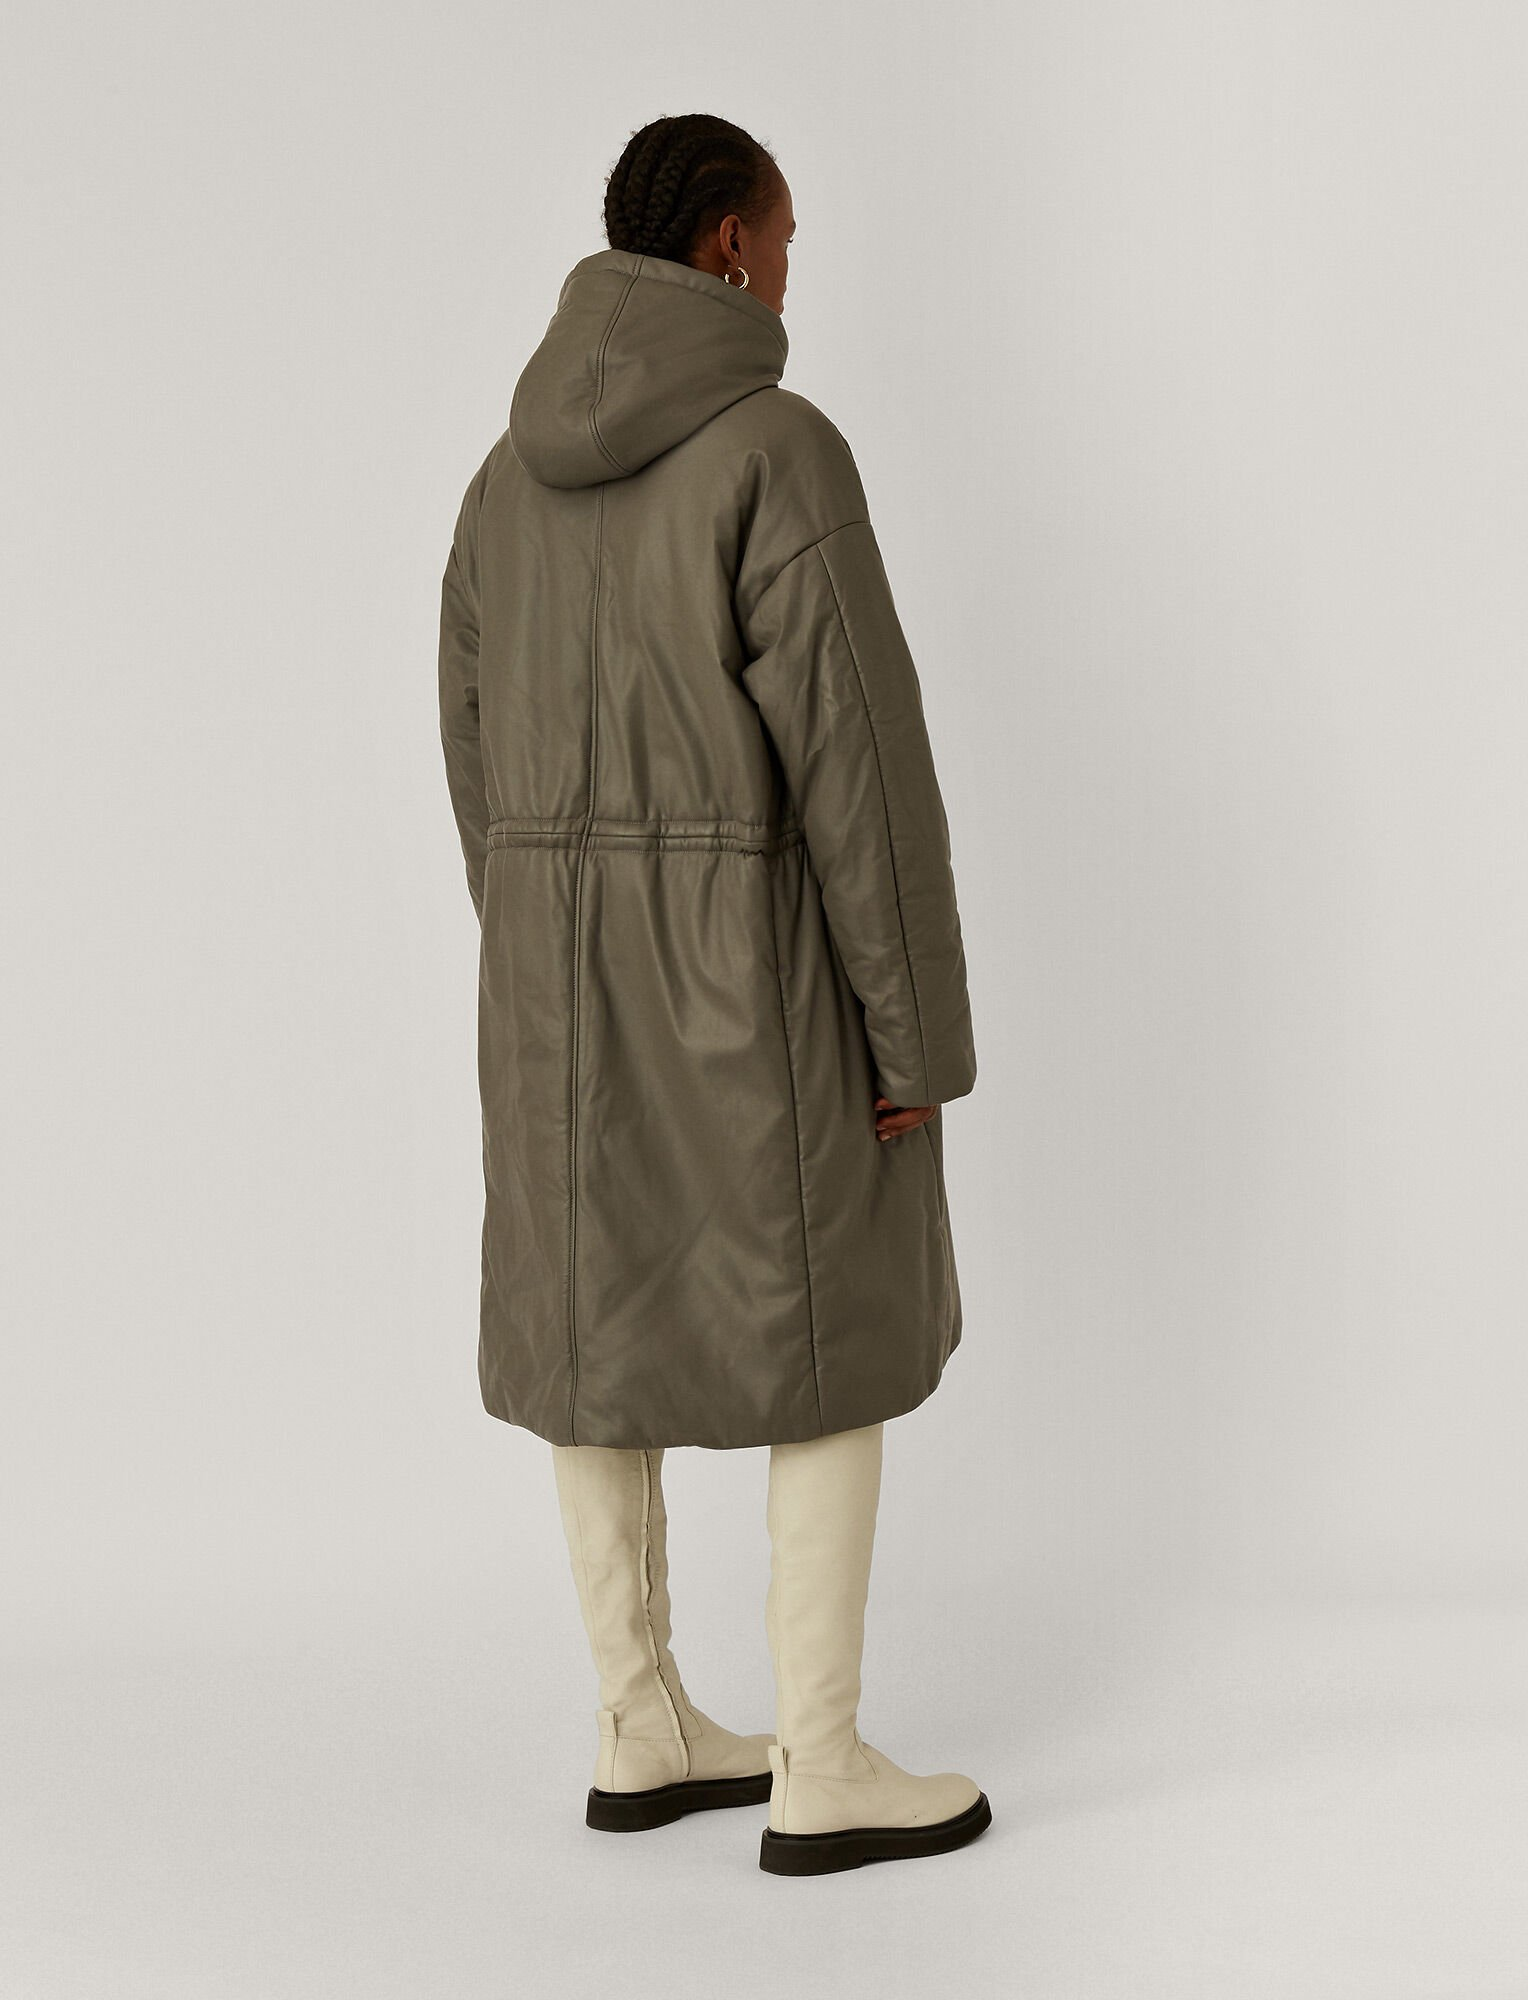 Joseph, Cocon Nappa Leather Coat, in Ash